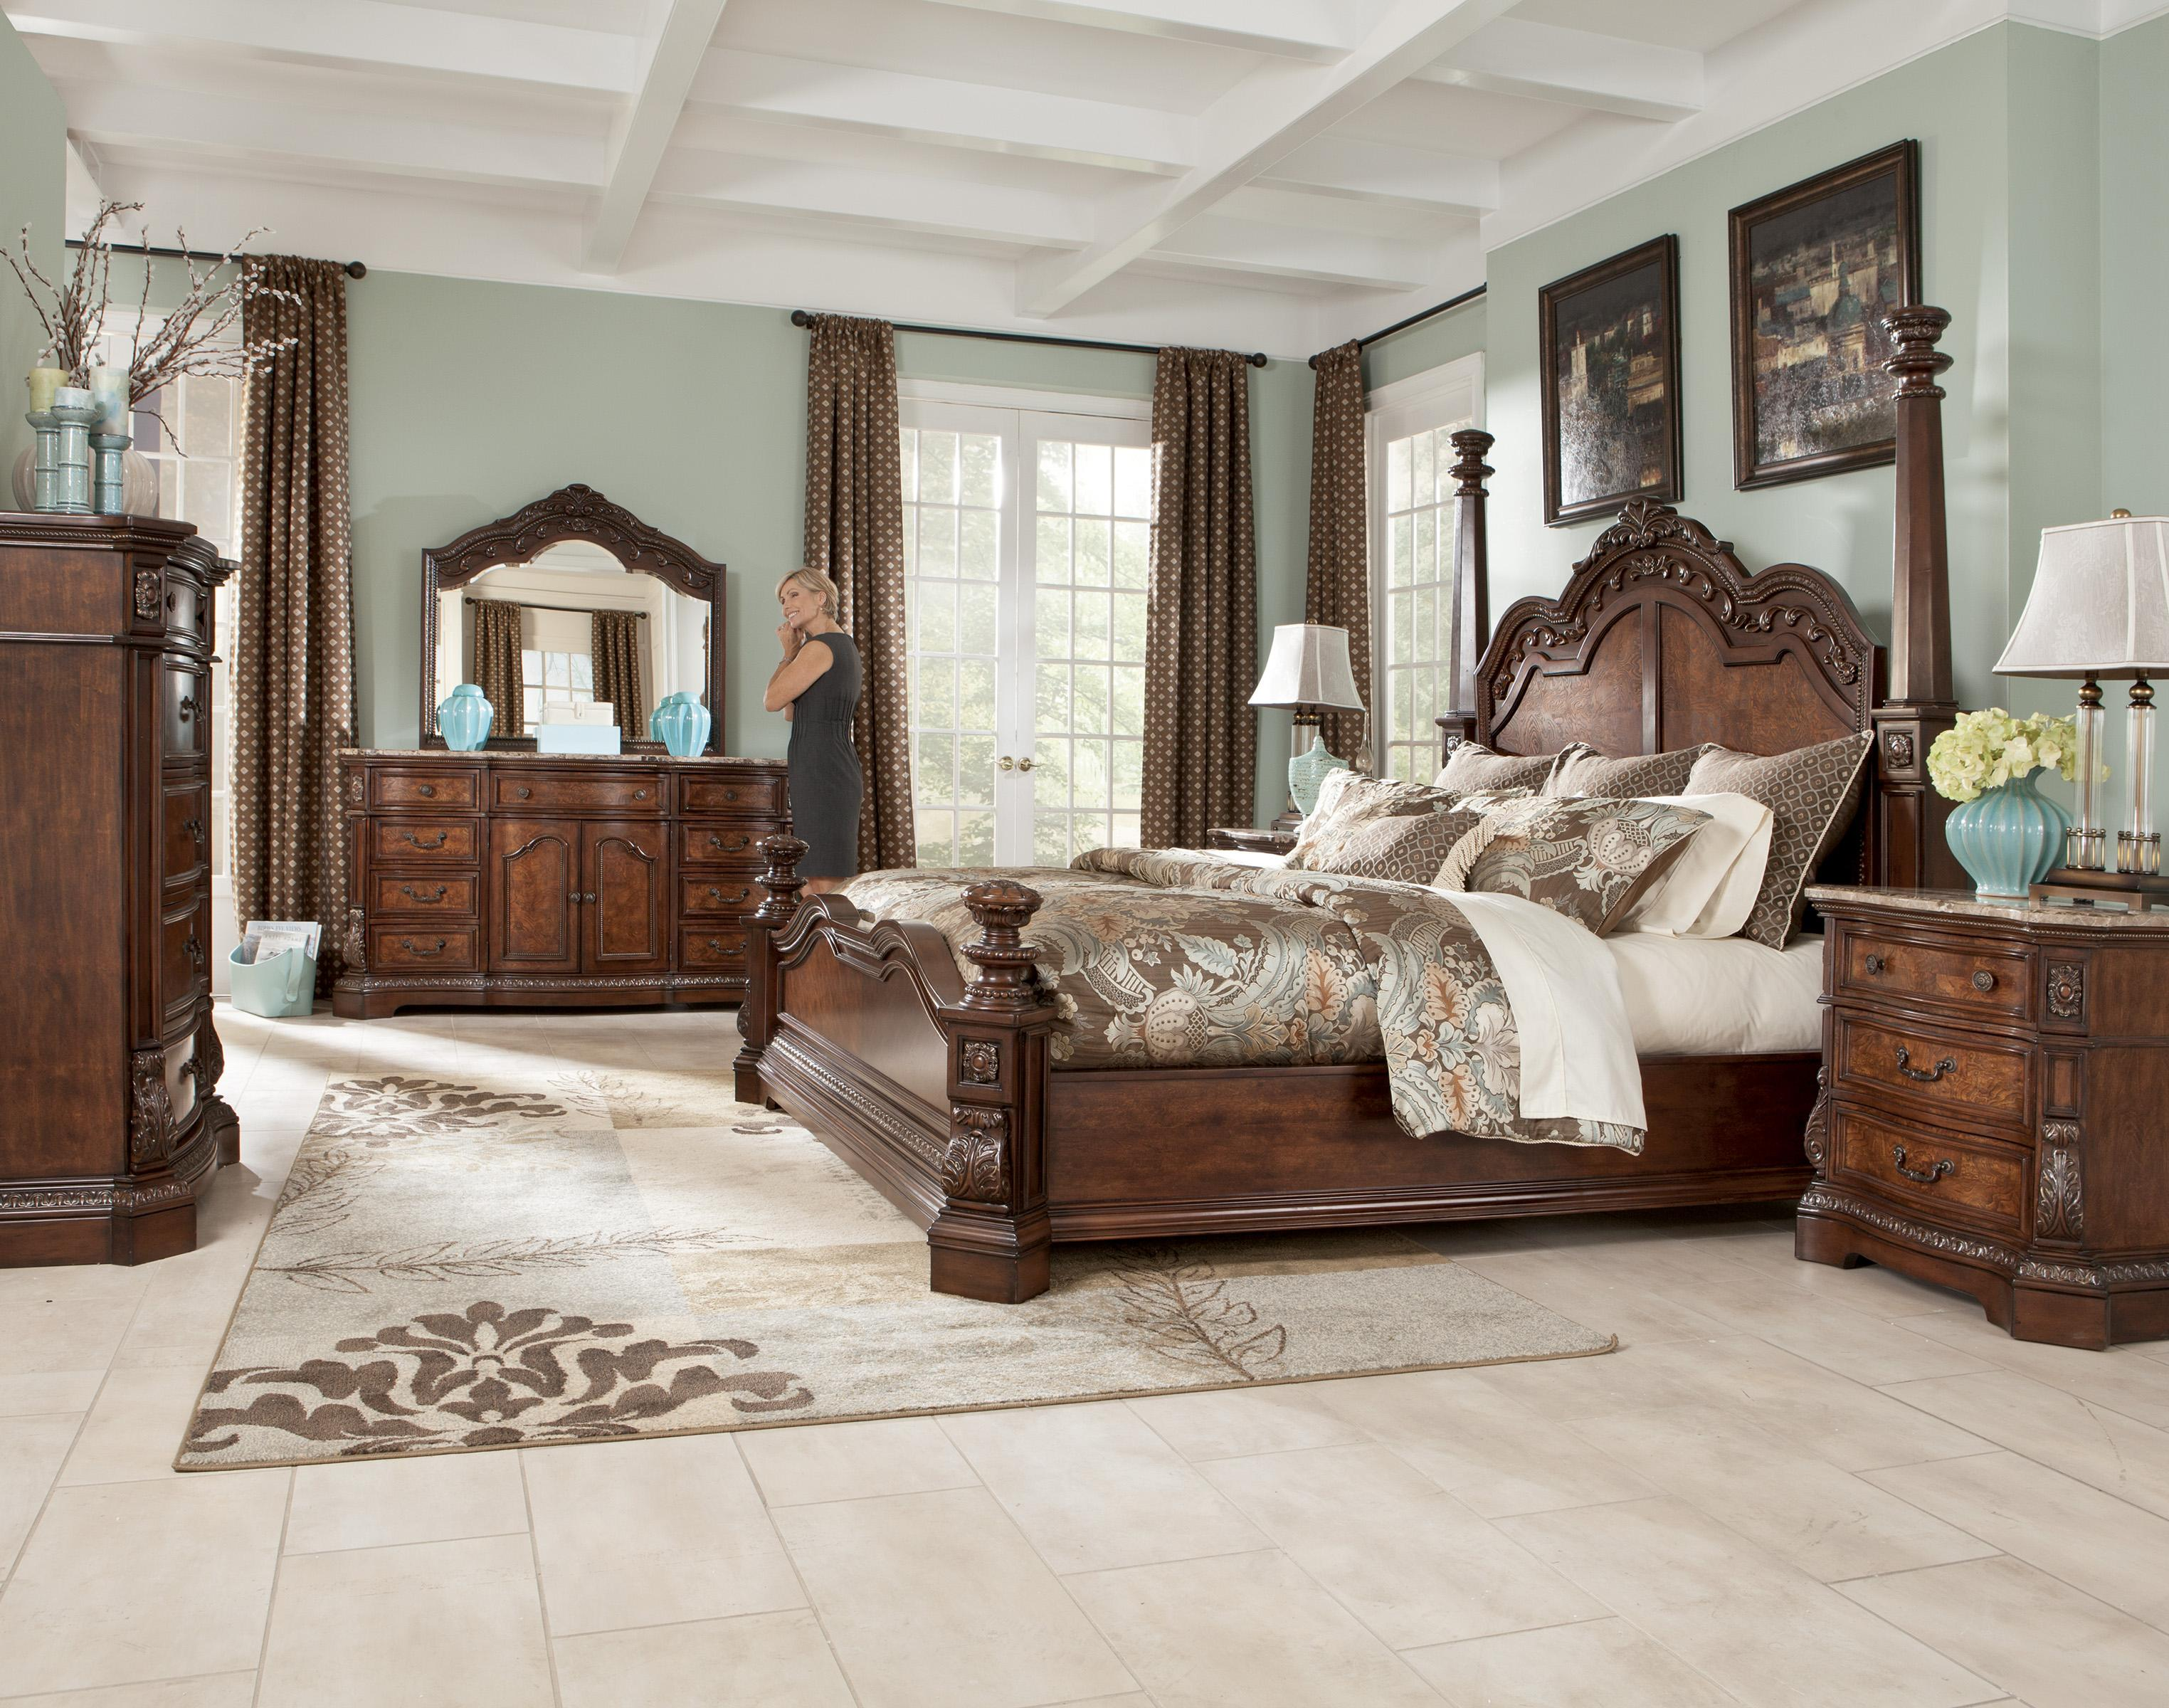 Bedroom Furniture With Marble Tops serpentine shape dresser with natural marble parquetry top